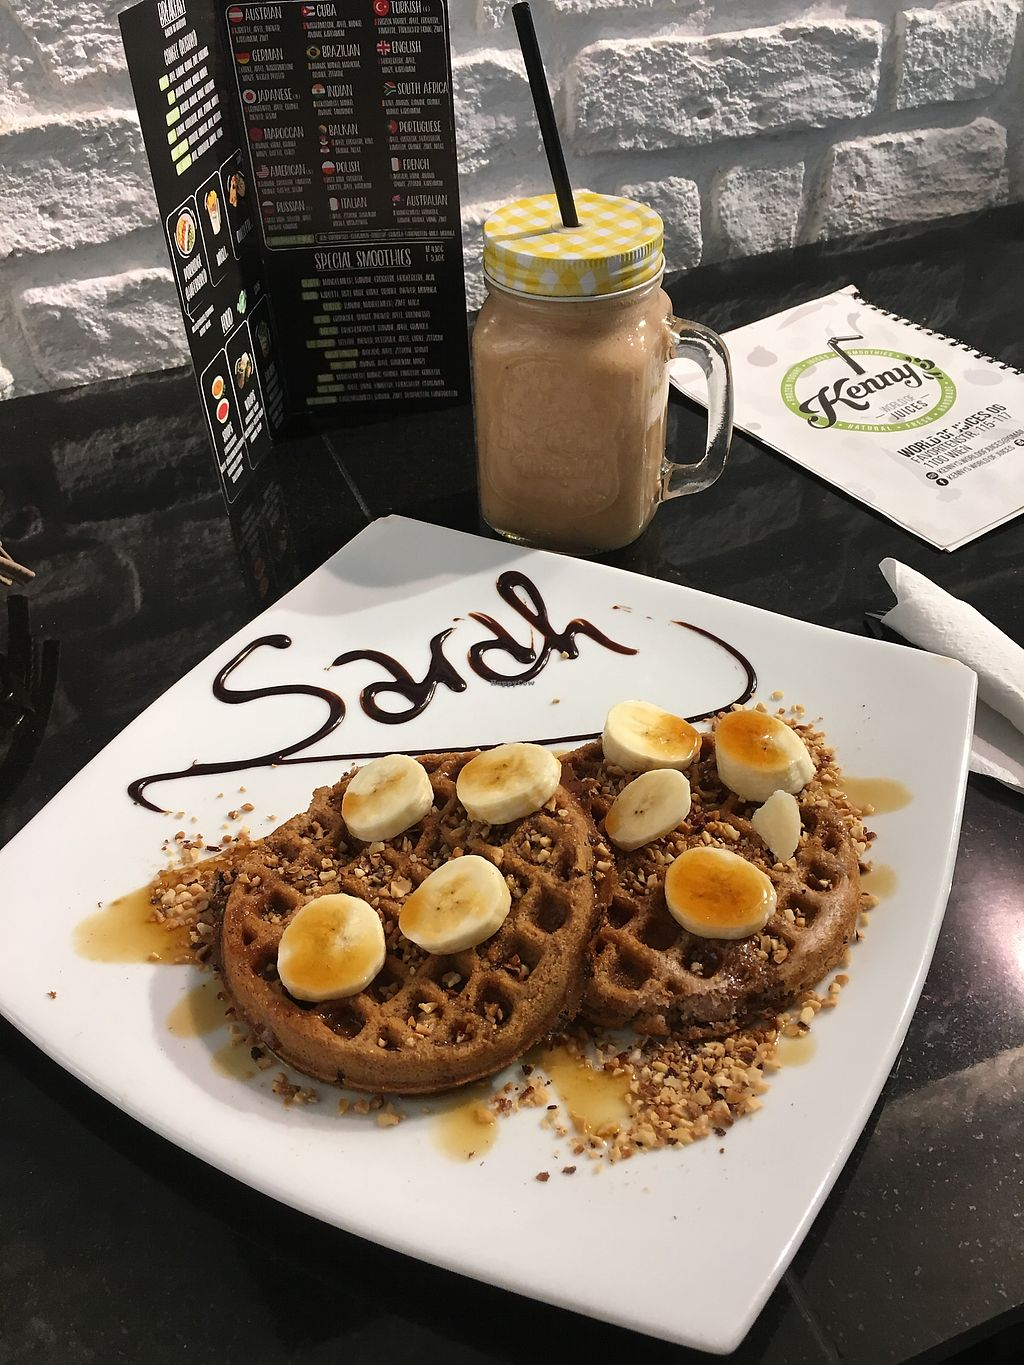 """Photo of Kenny's World of Juices  by <a href=""""/members/profile/SarahBlowers"""">SarahBlowers</a> <br/>Vegan Waffles <br/> January 2, 2018  - <a href='/contact/abuse/image/79702/341947'>Report</a>"""